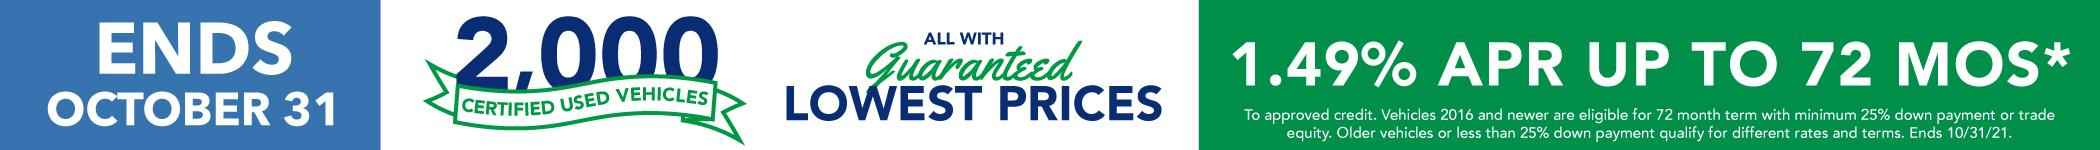 2,000 Certified Used Vehicles All With Guaranteed Lowest Prices